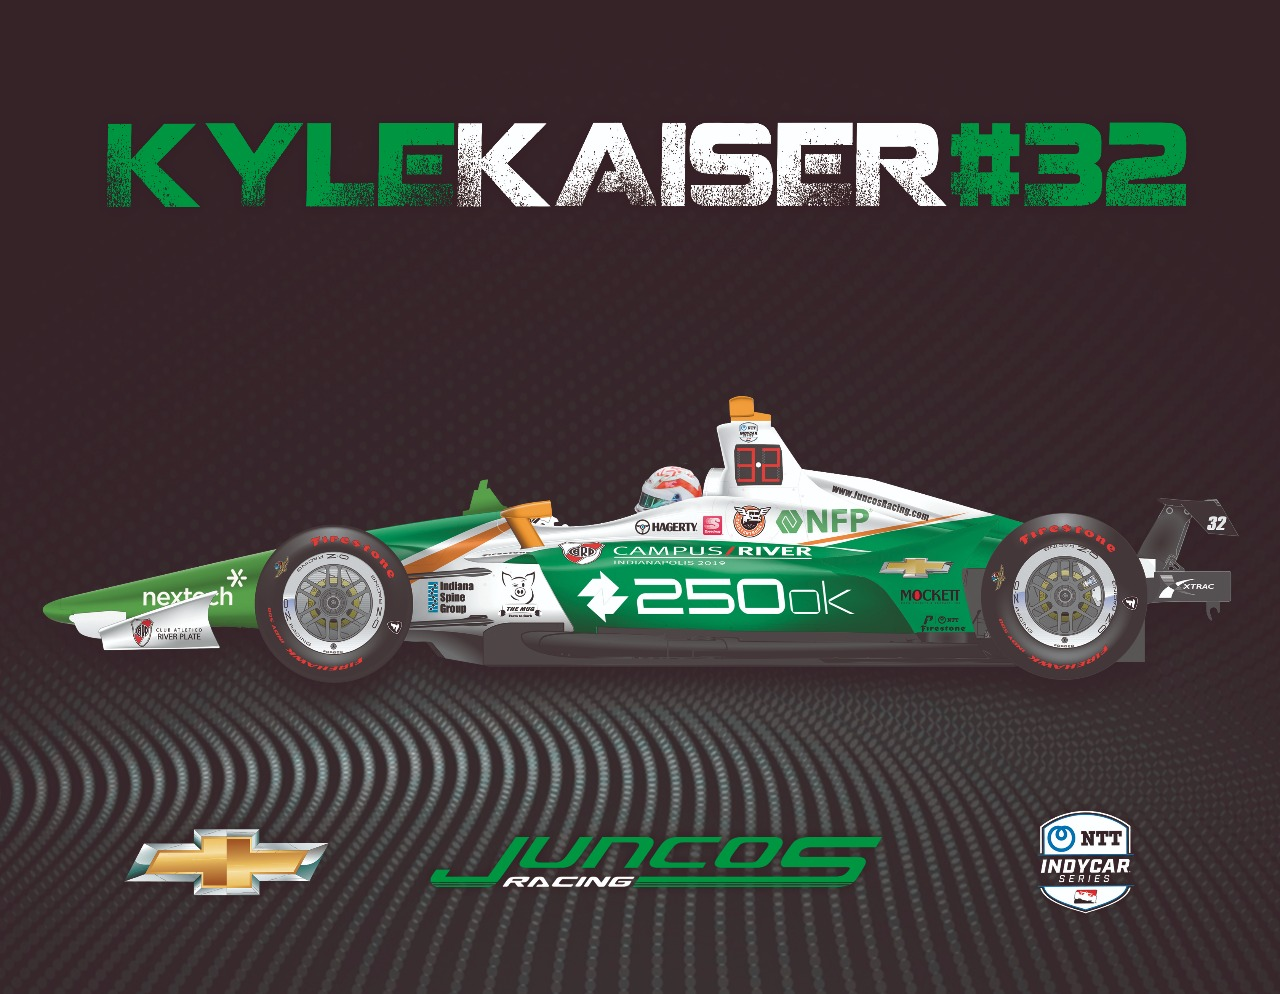 Kyle Kaiser is Indy's Cinderella story, and Hagerty is along for the ride thumbnail